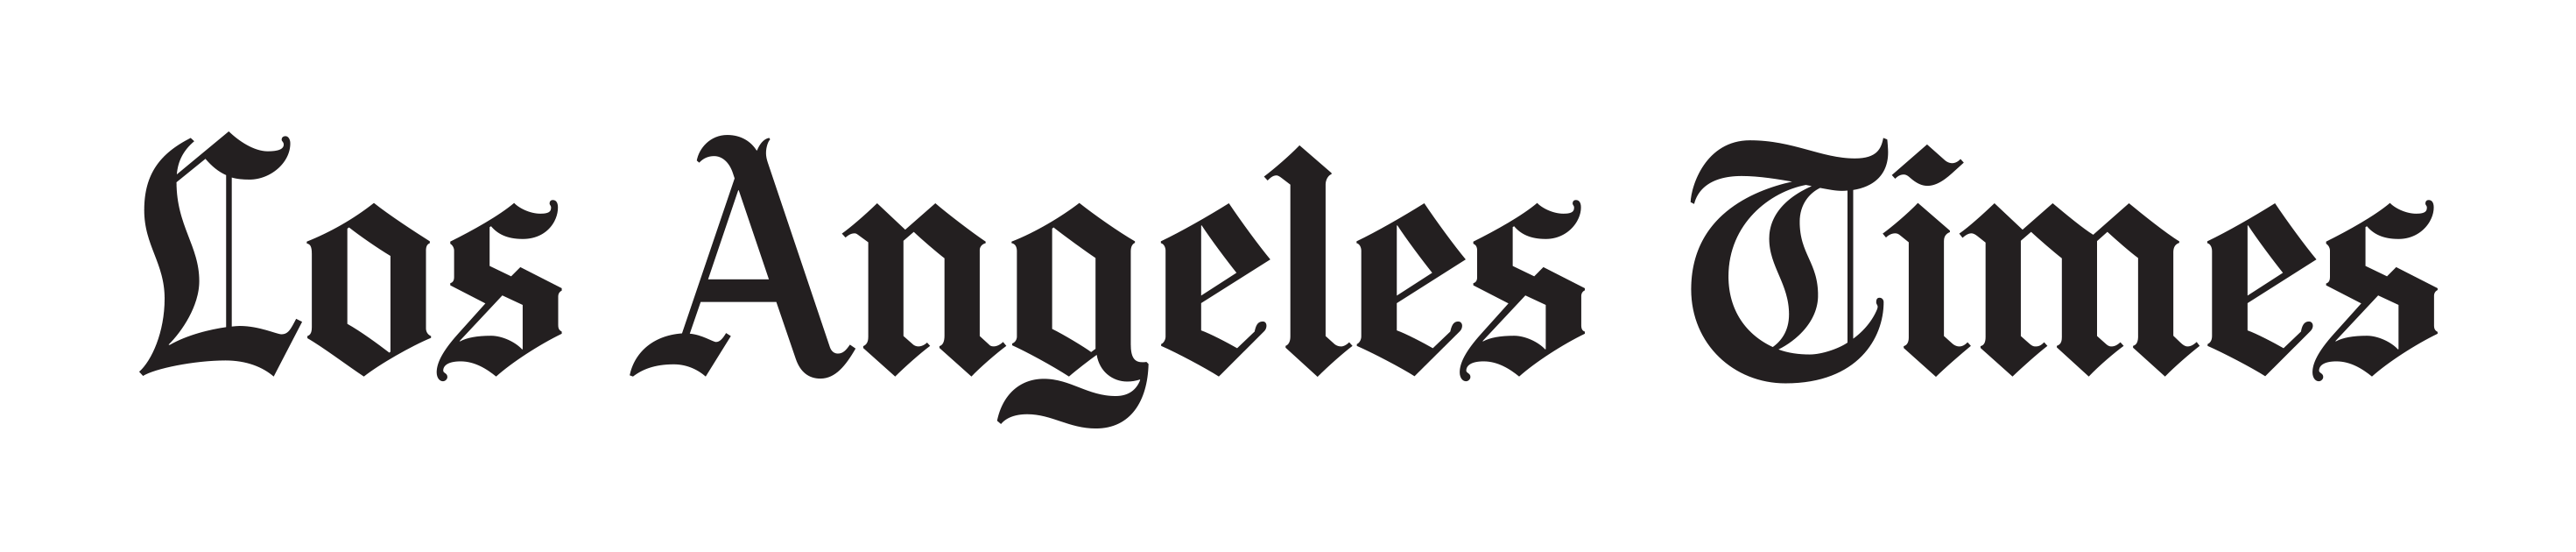 Los Angeles Times logo.